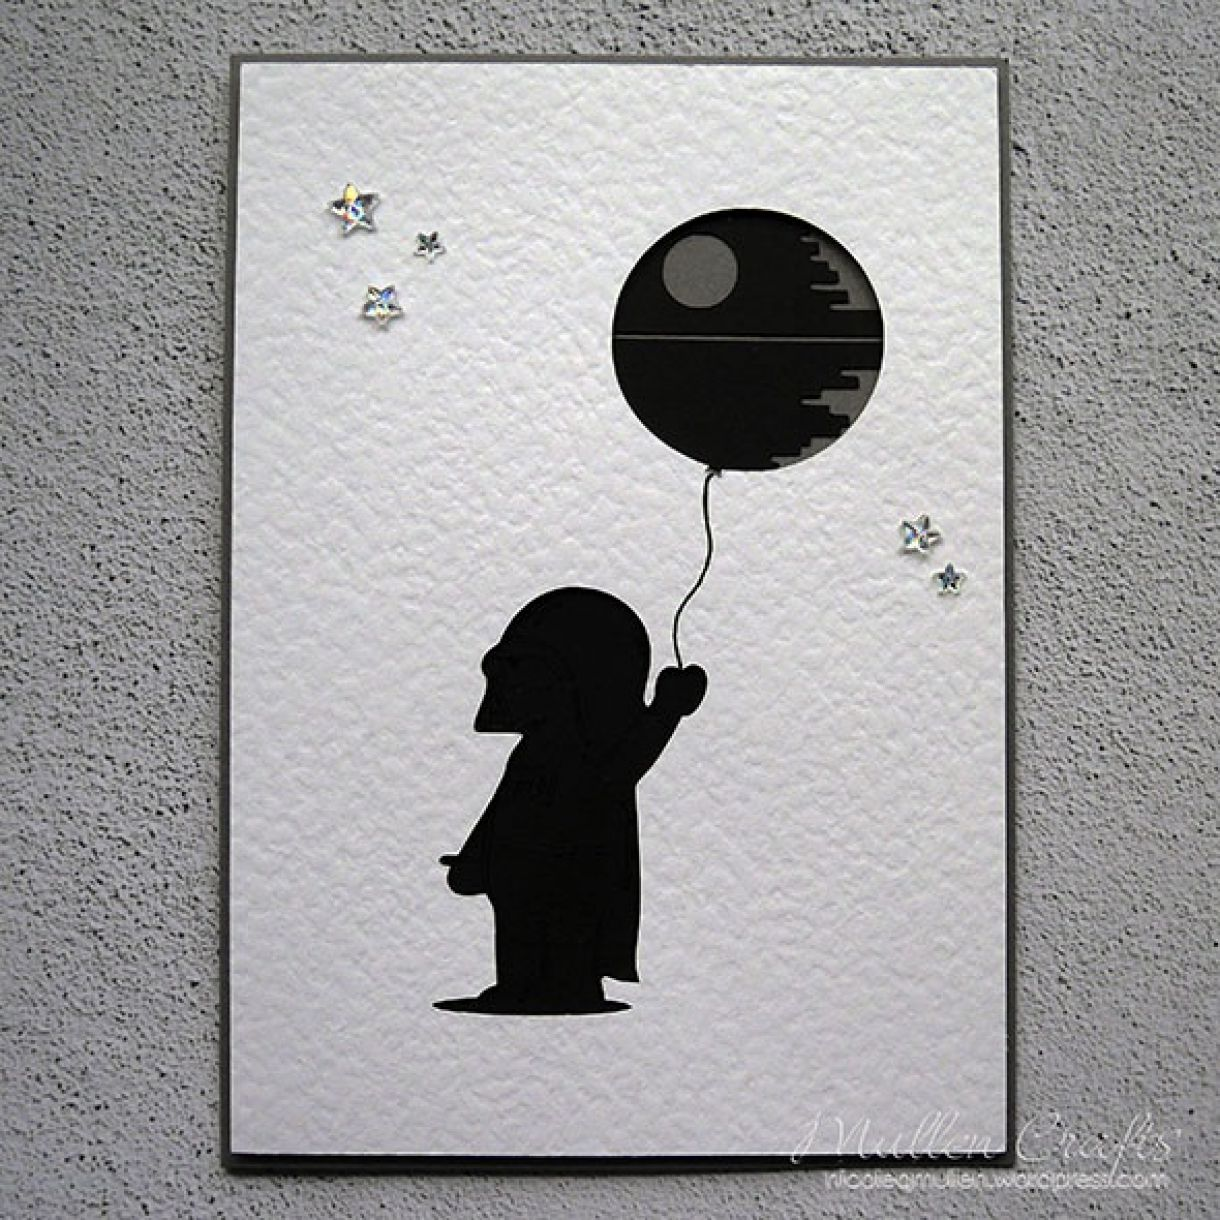 Star Wars Balloon Death Star Bday Card 4